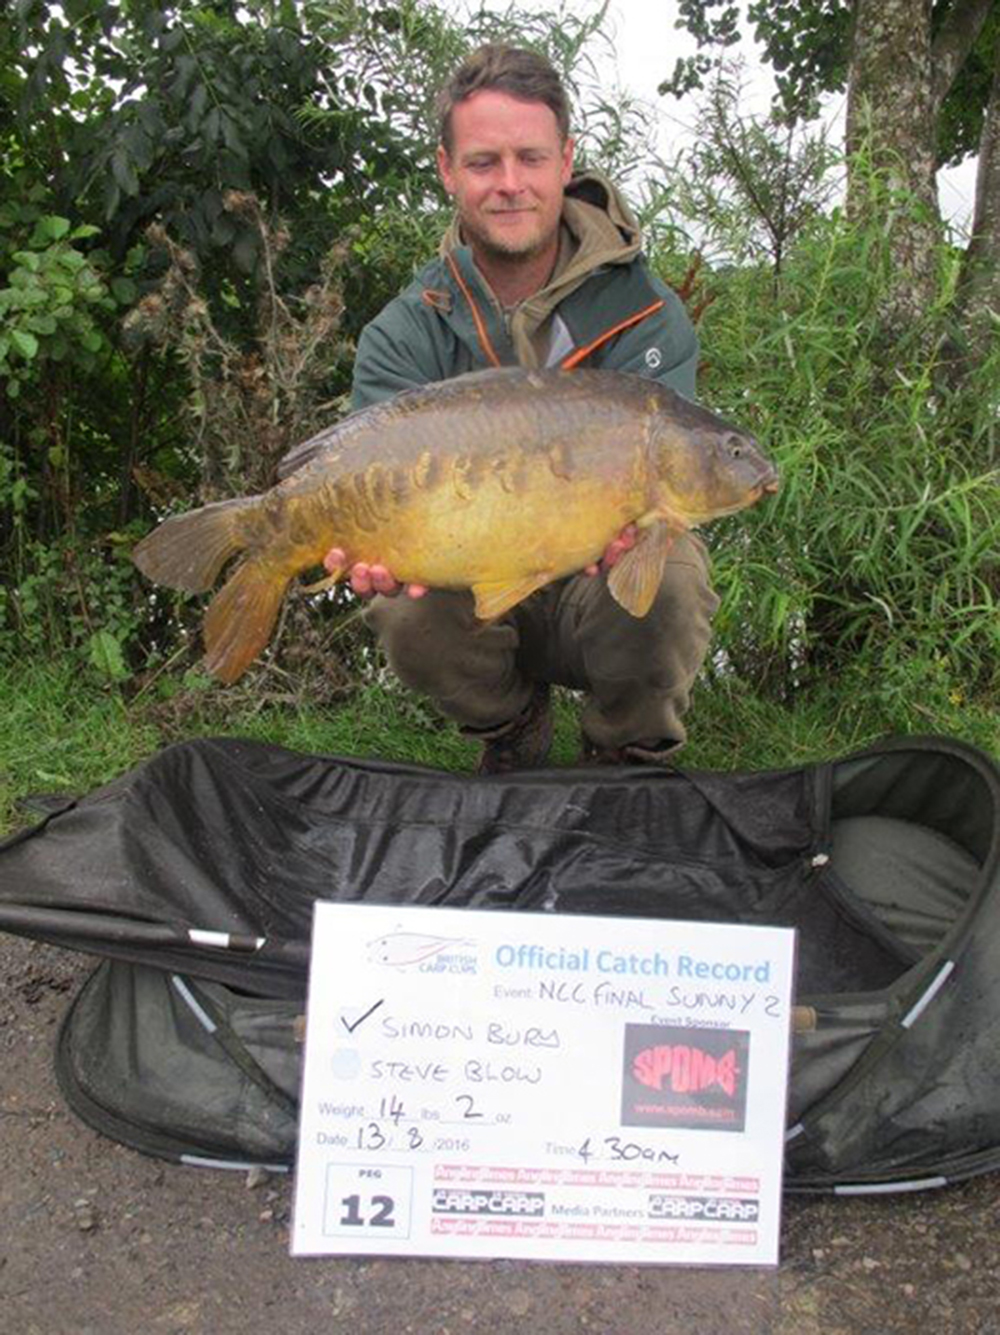 Simon Bury came second with 66lb 15oz.